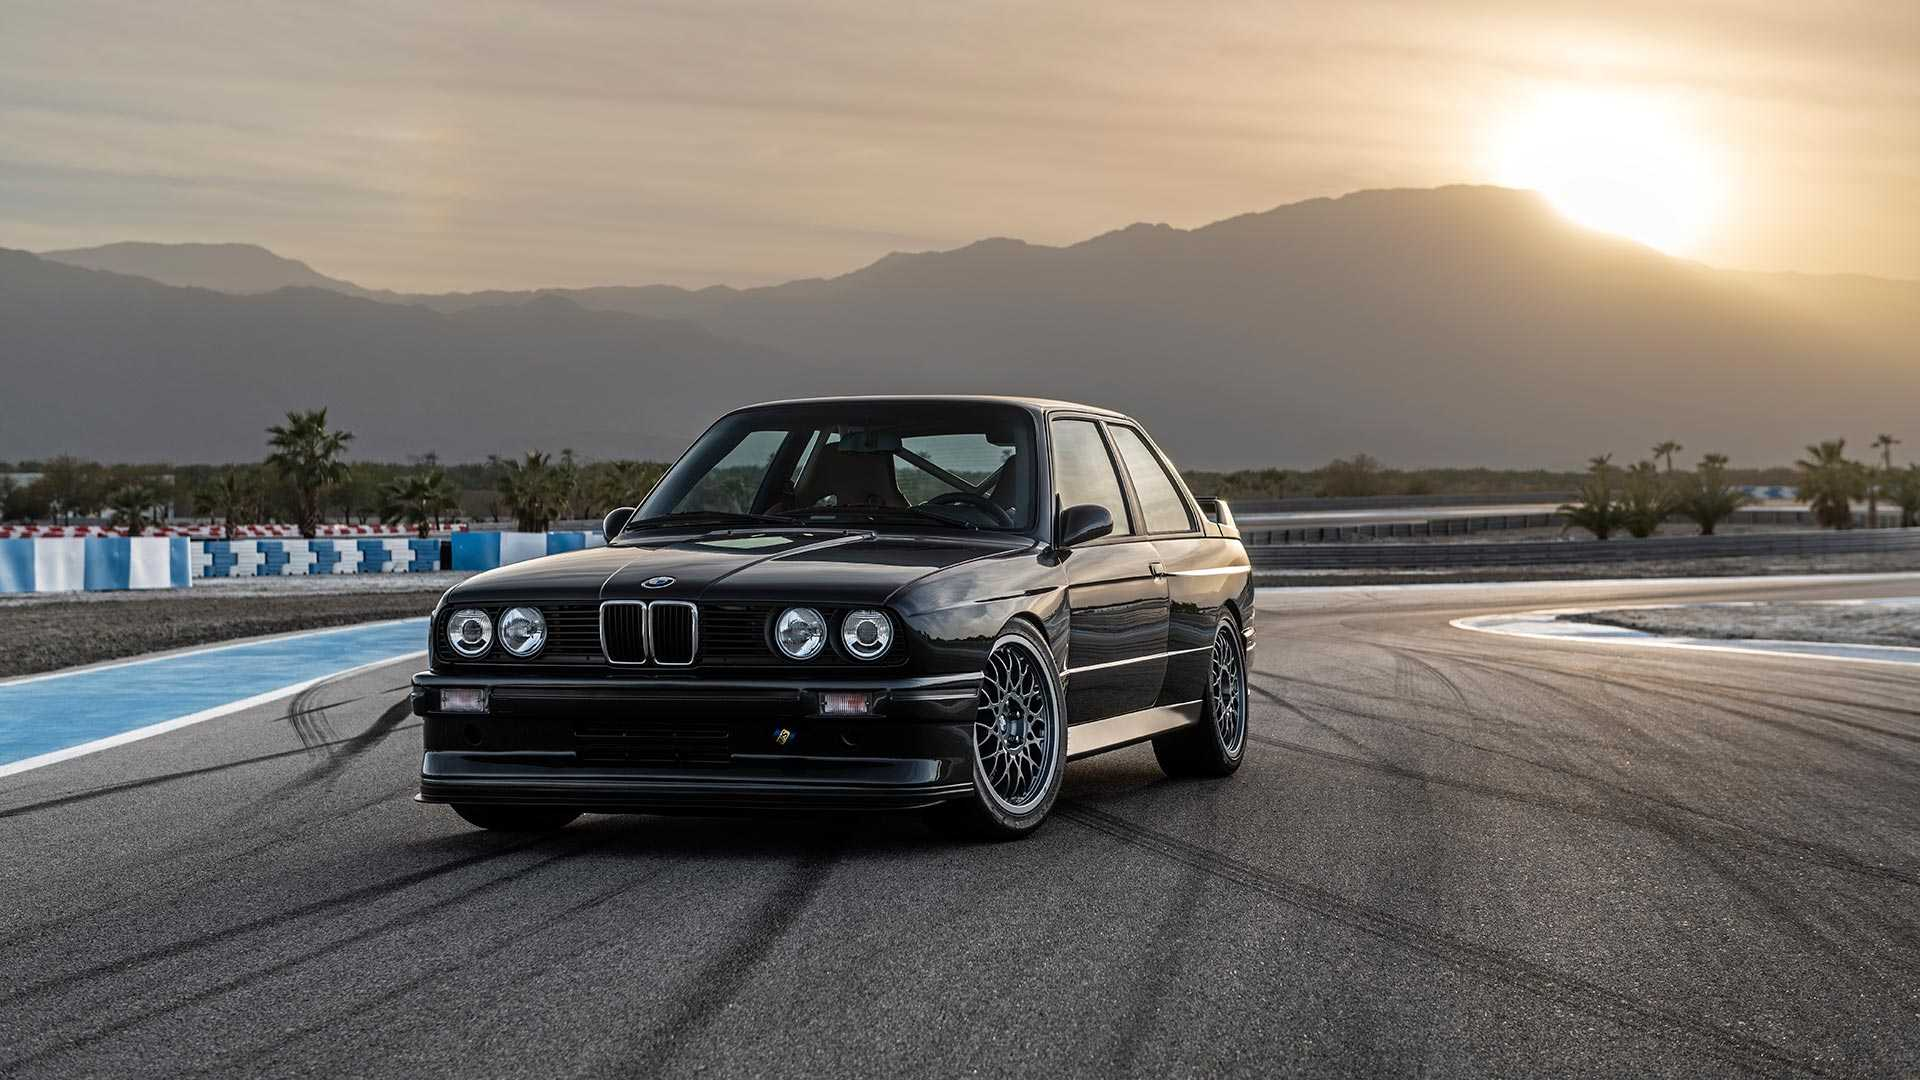 Bmw E30 M3 Restomod Packs 390 Hp With Classic Looks